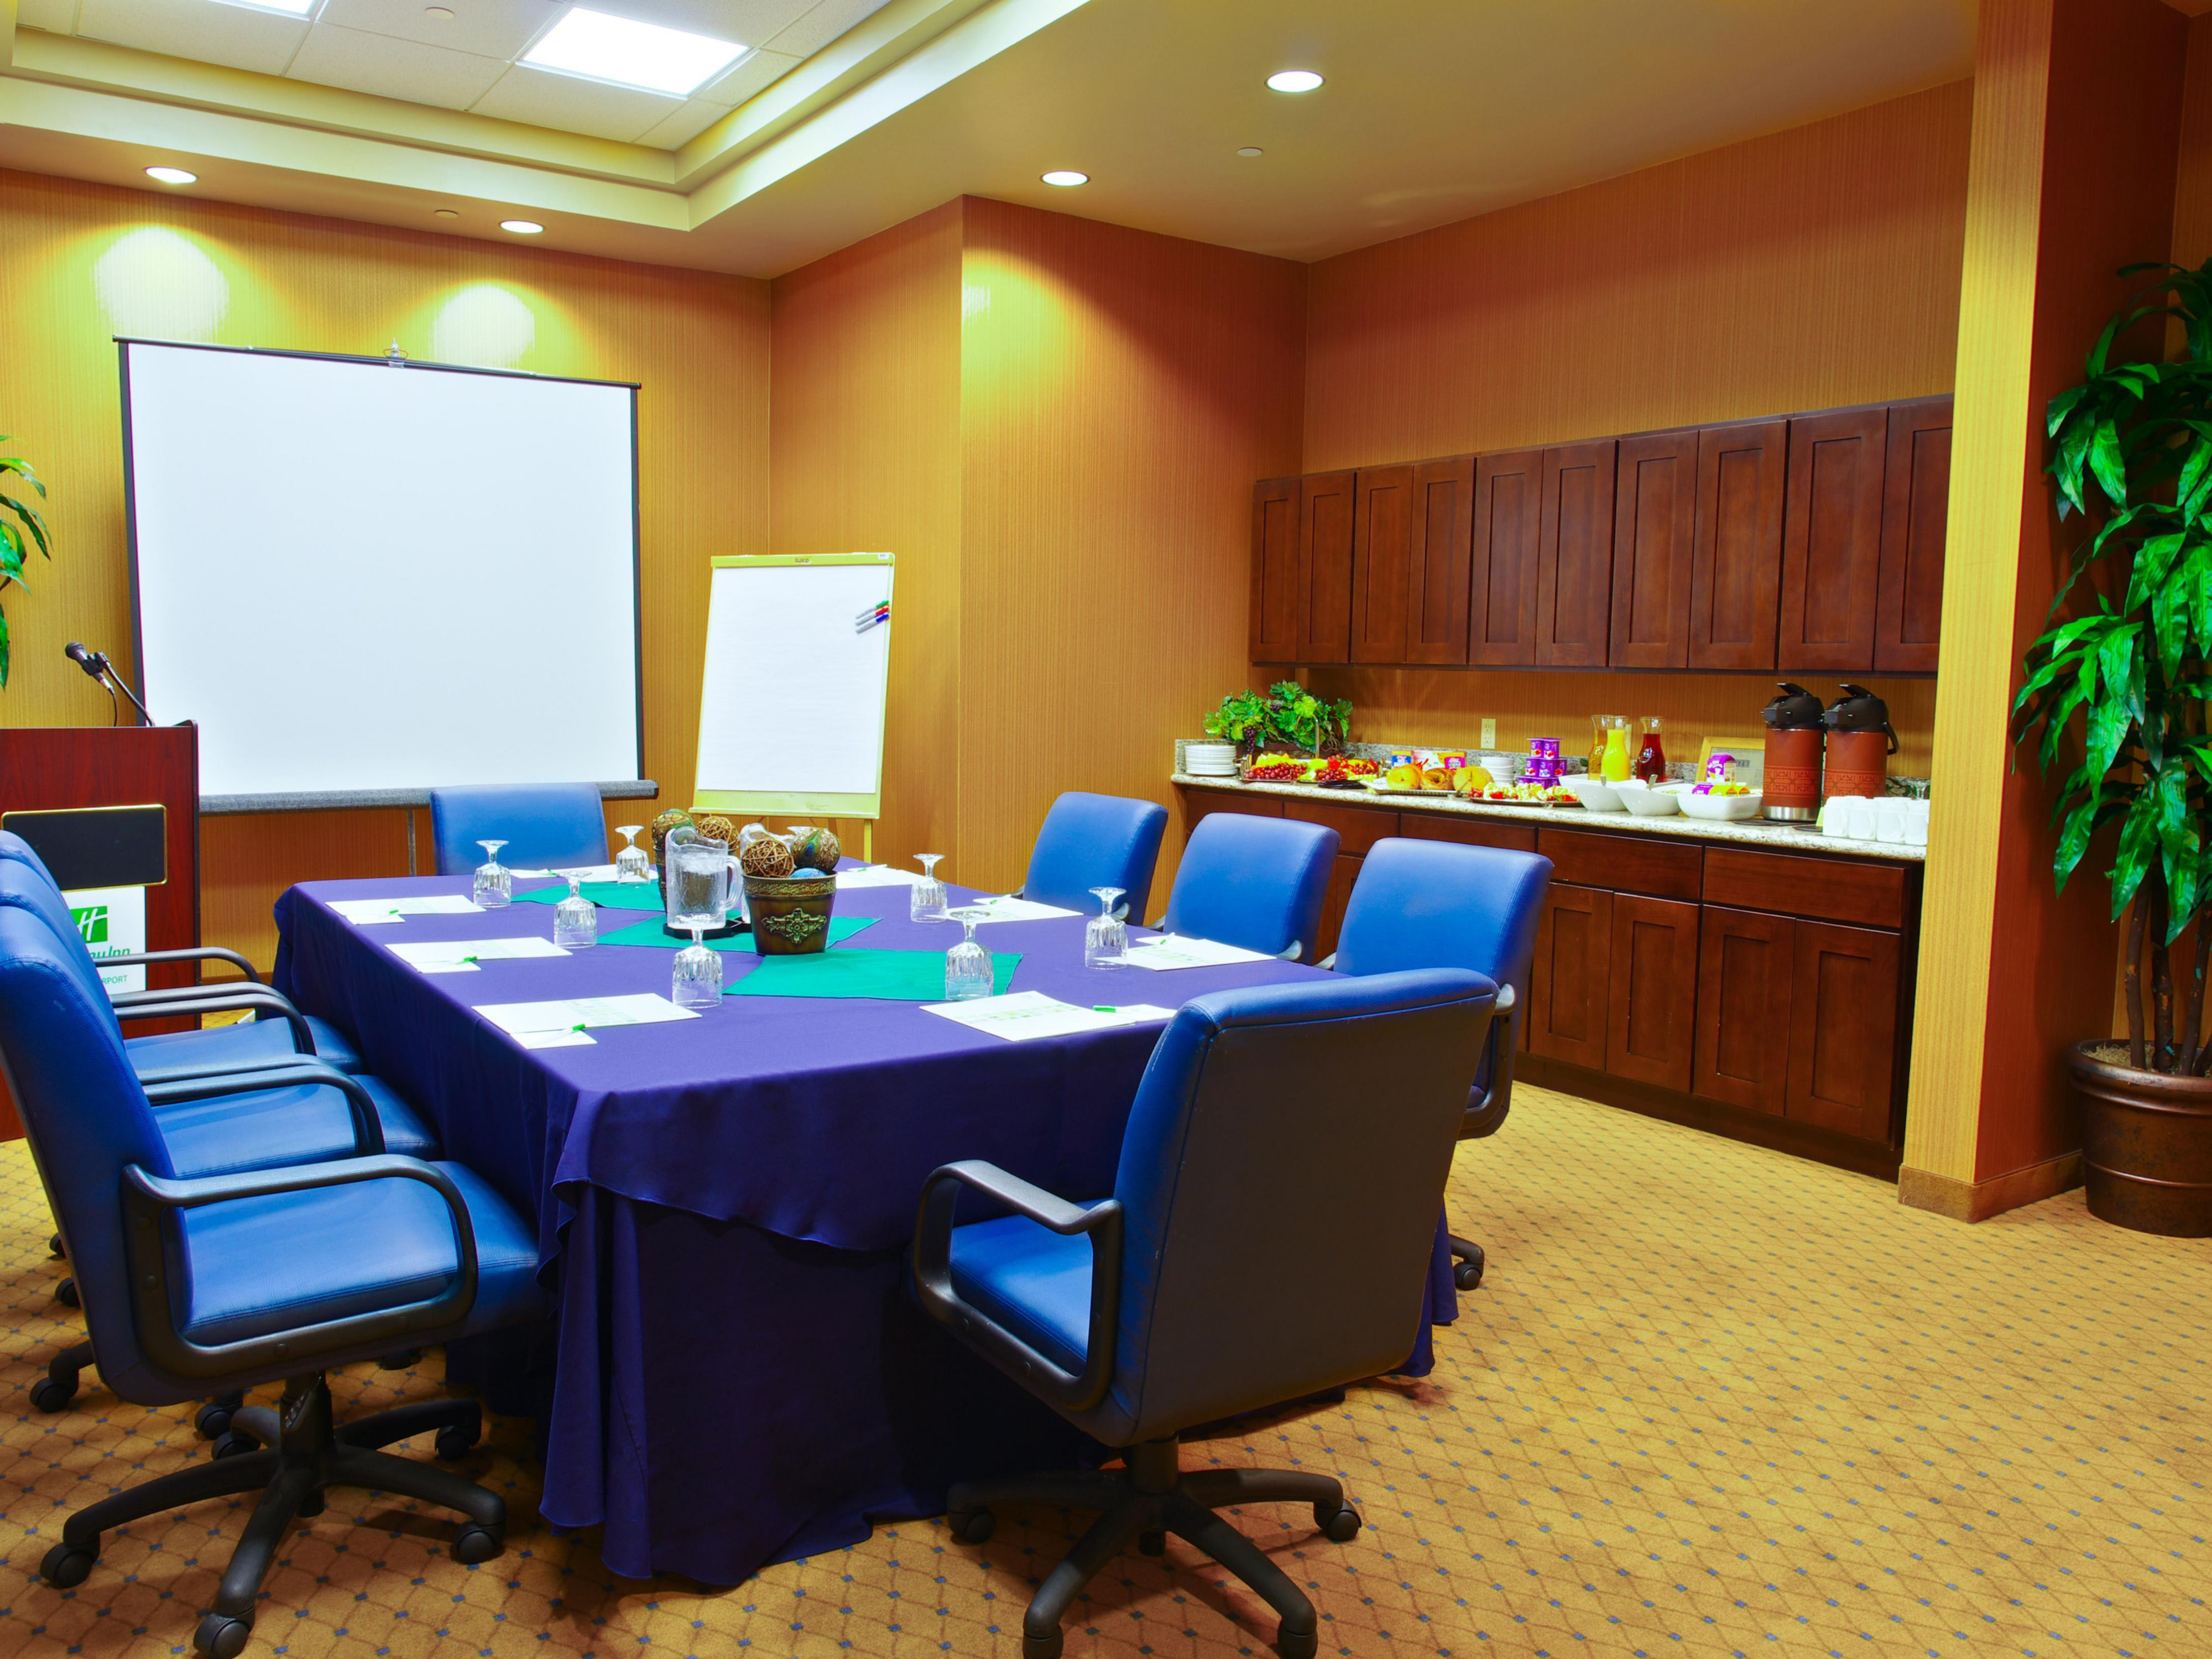 Boardroom for smaller meetings or break outs